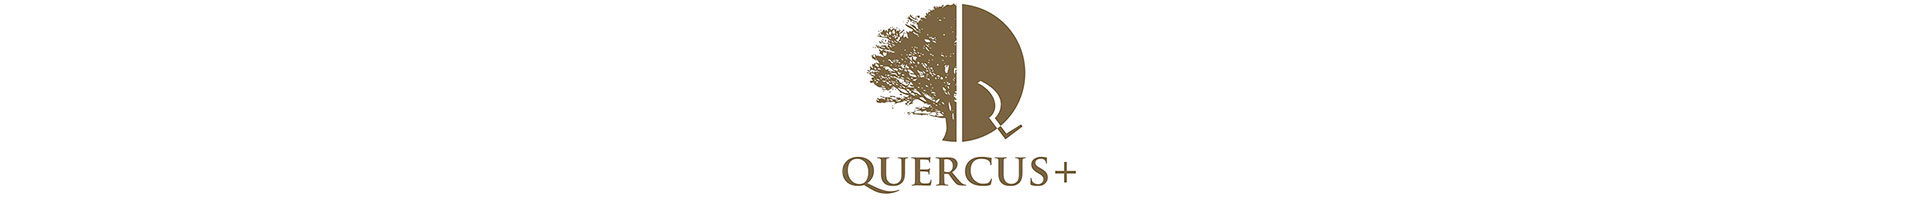 Quercus plus logo